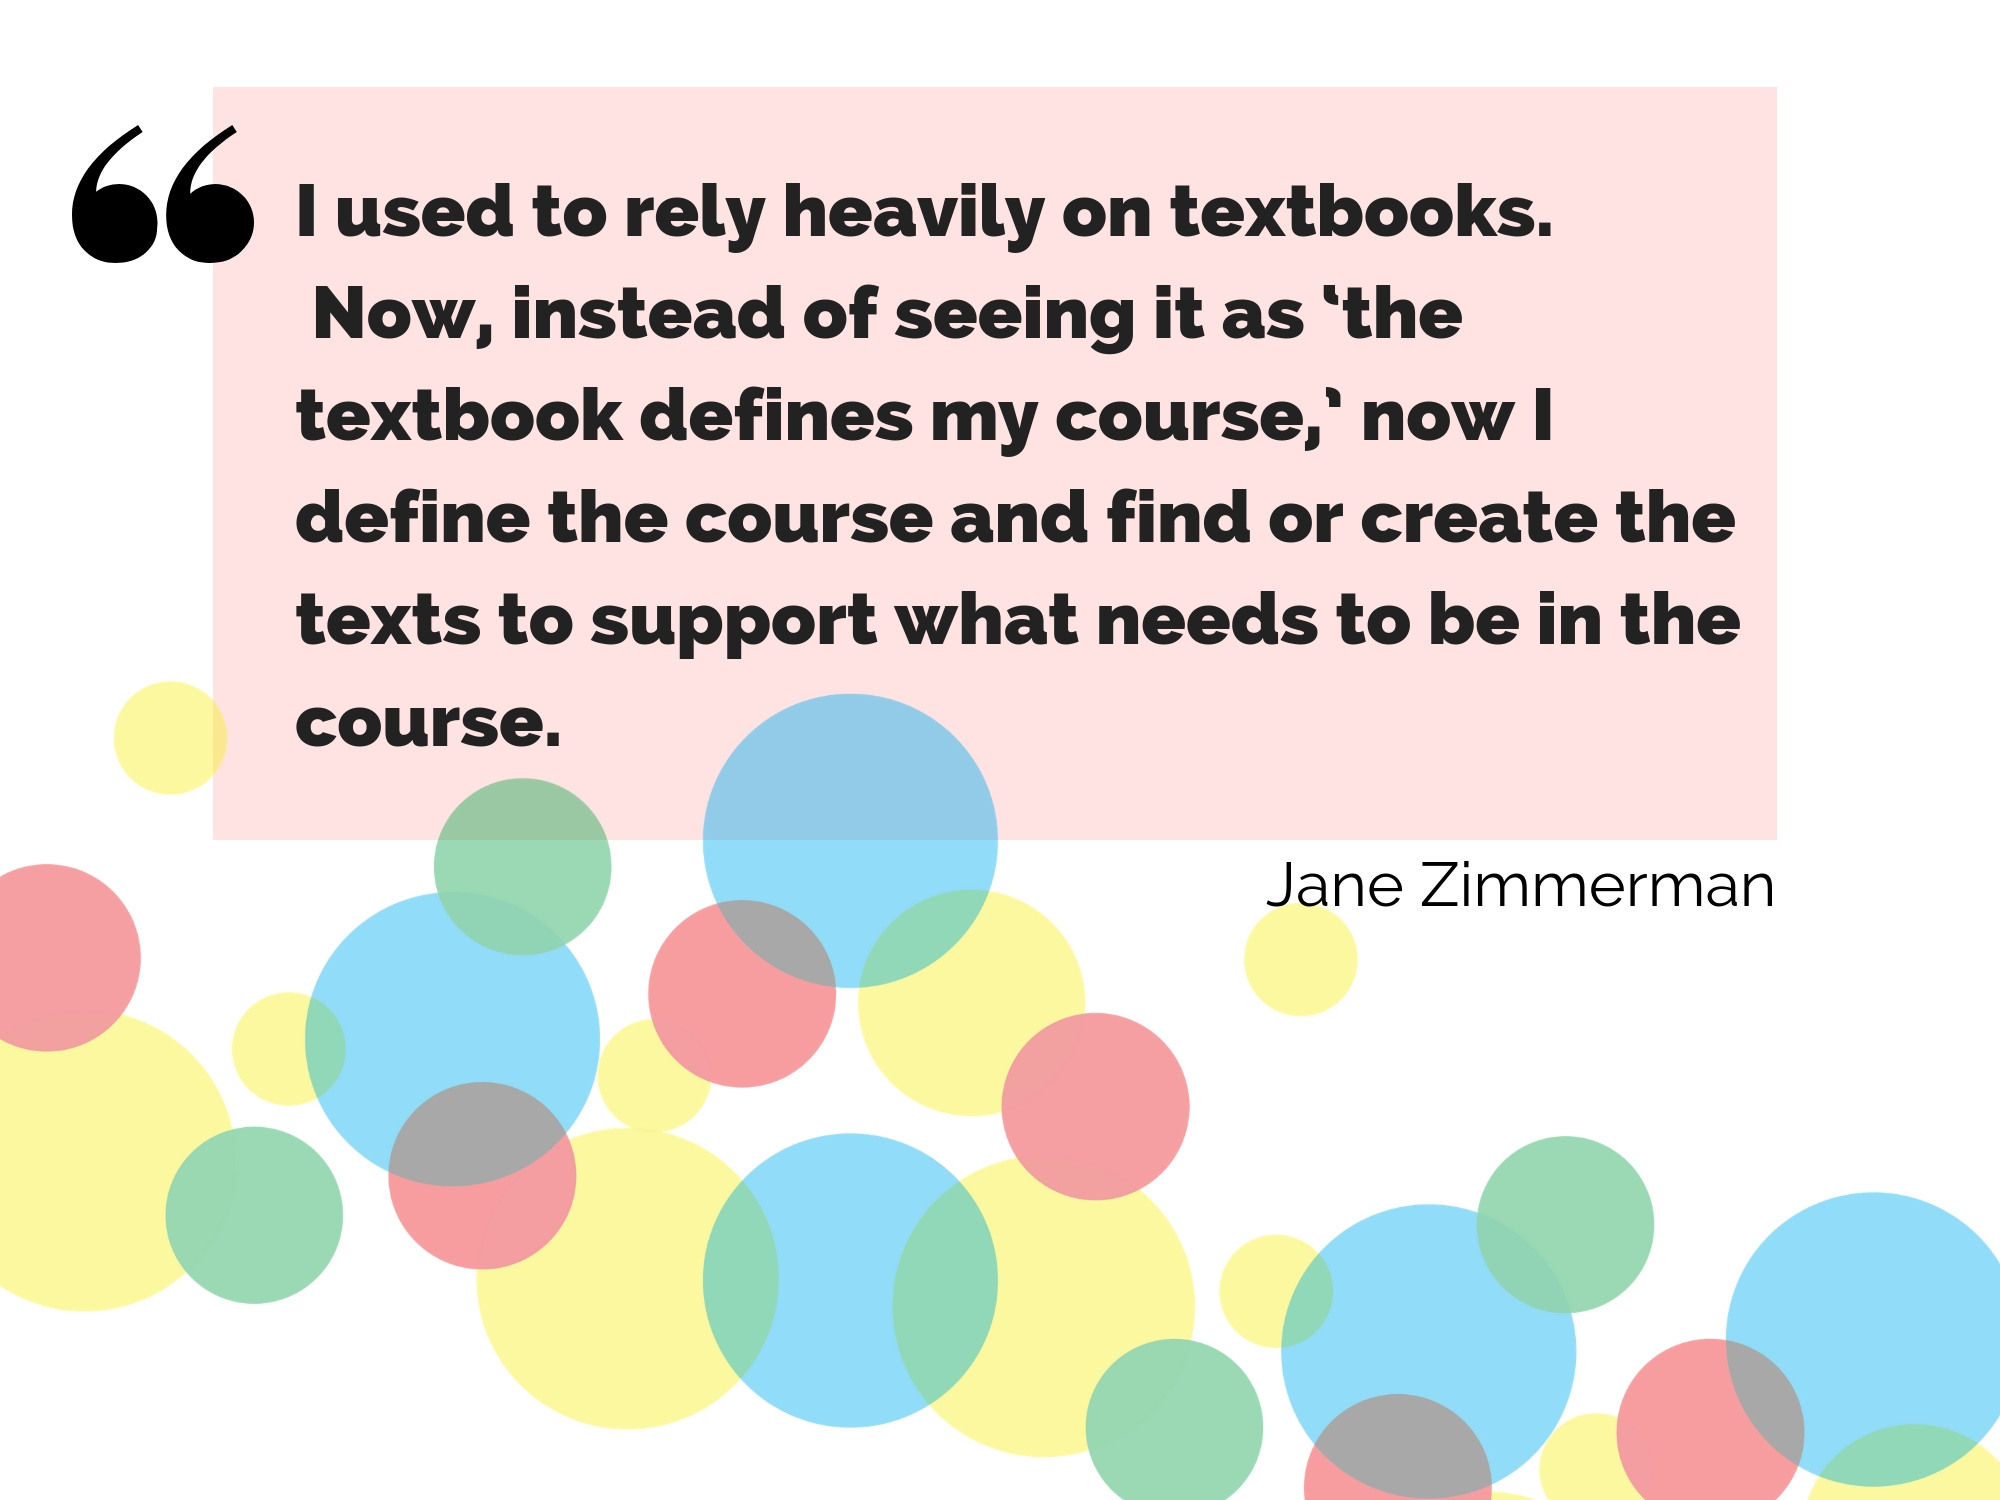 "I used to rely heavily on textbooks. now, instead of seeing it as ""the textbook defines my course,"" now I define the course and find or create the texts to support what needs to be in the course. -Jane Zimmerman"